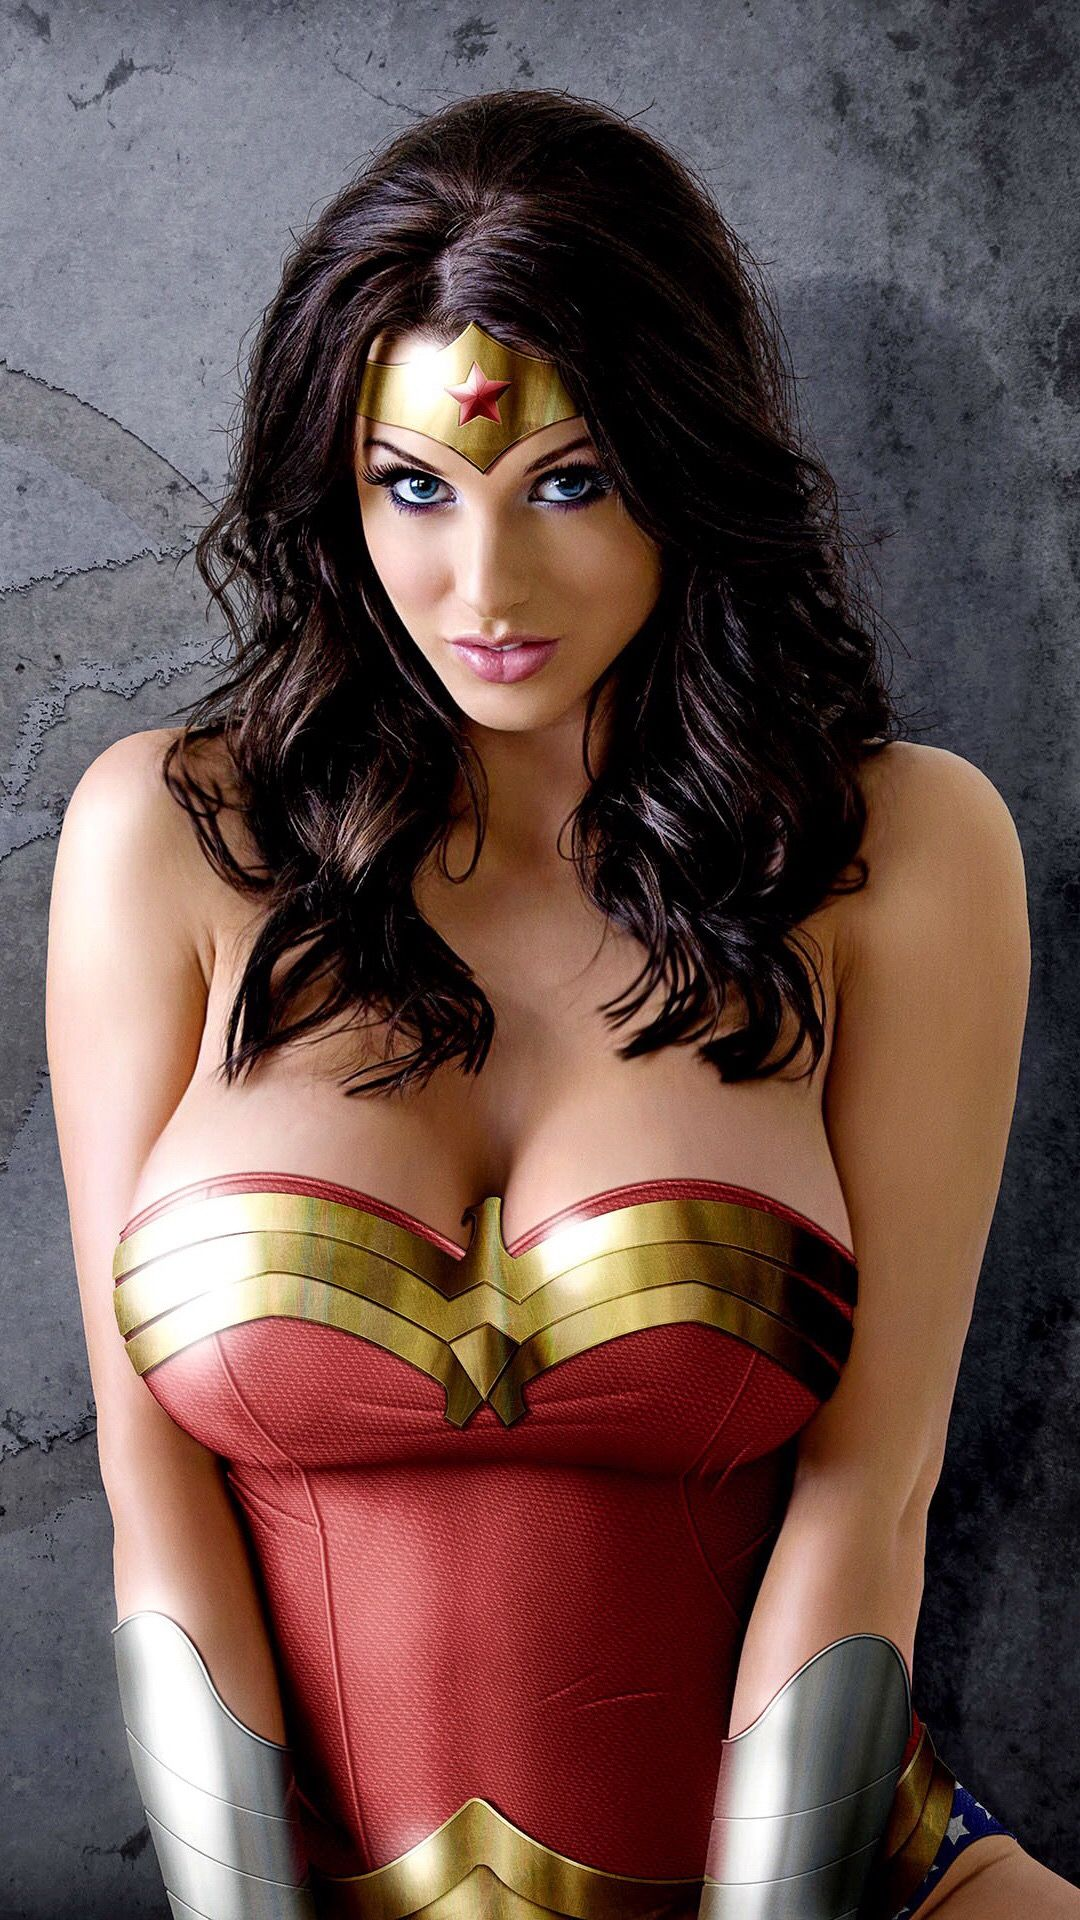 alice goodwin | alice goodwin | pinterest | alice goodwin and alice